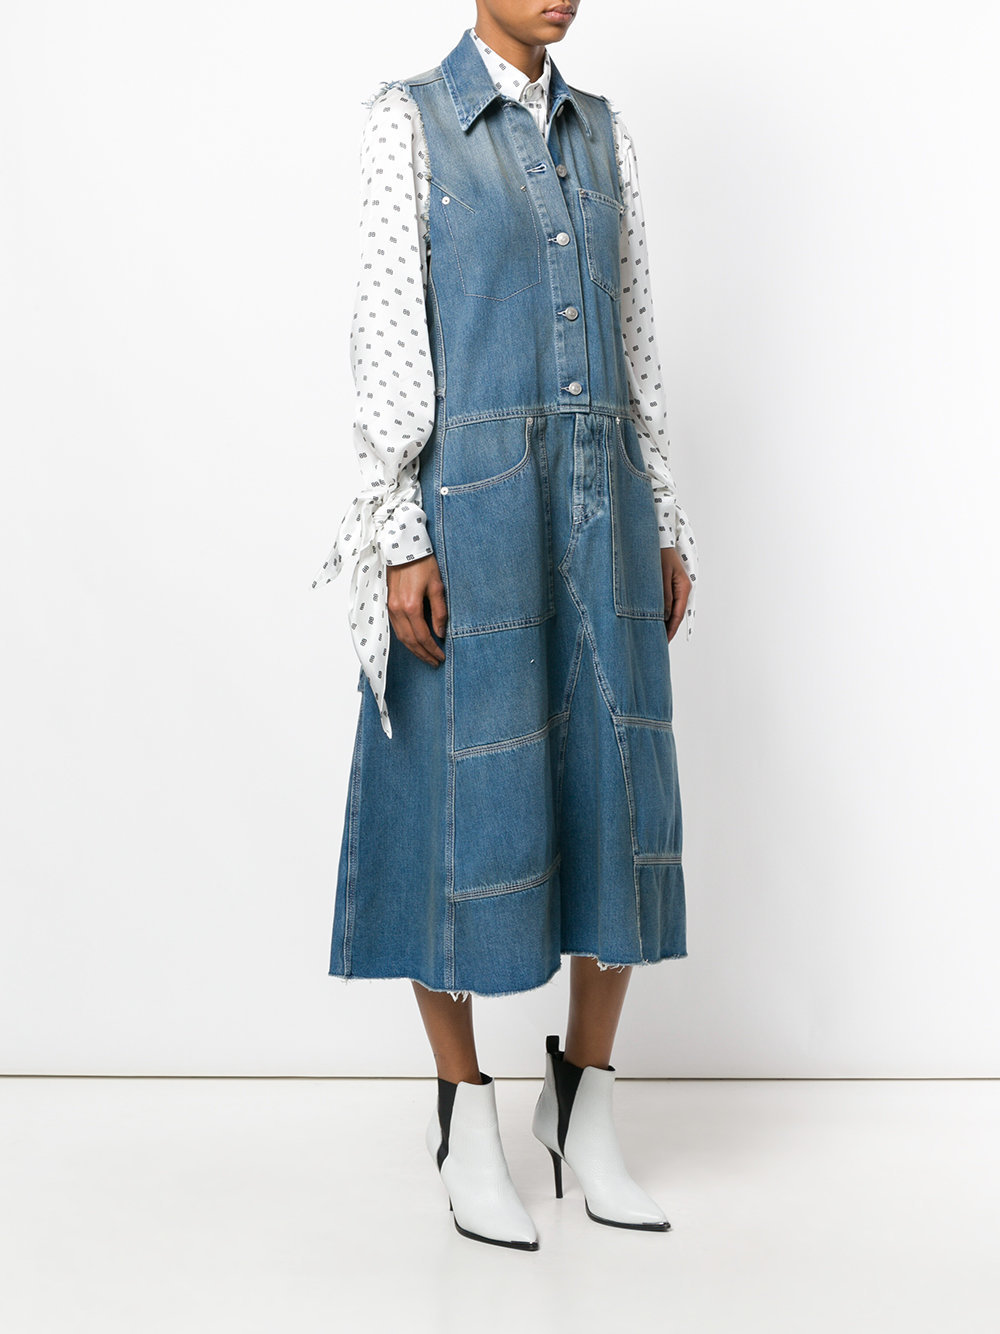 c4edccd7fc85 Denim Shirt Dress Uk - raveitsafe